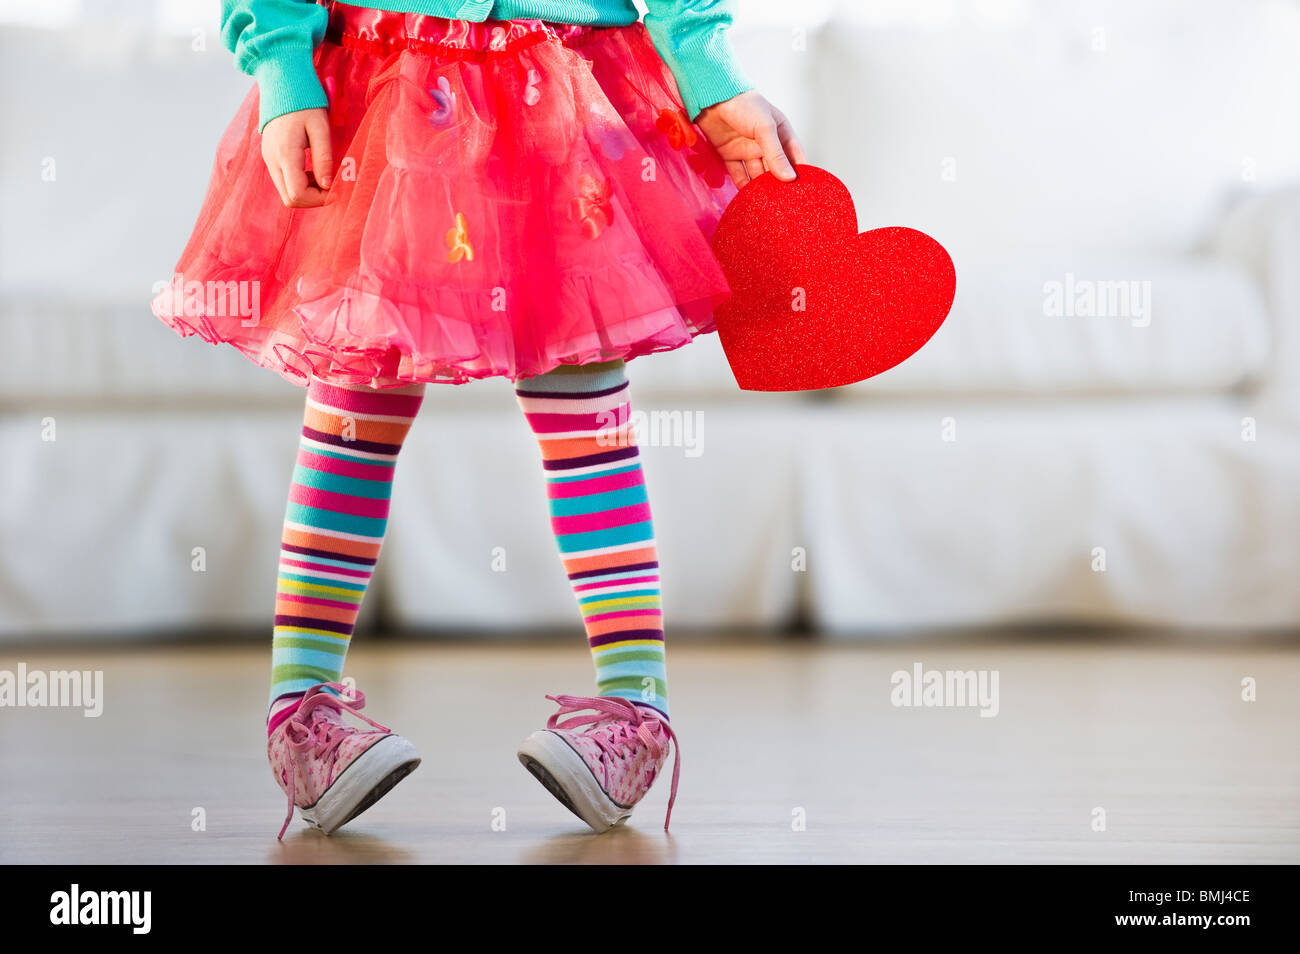 Young girl wearing colorful tights - Stock Image